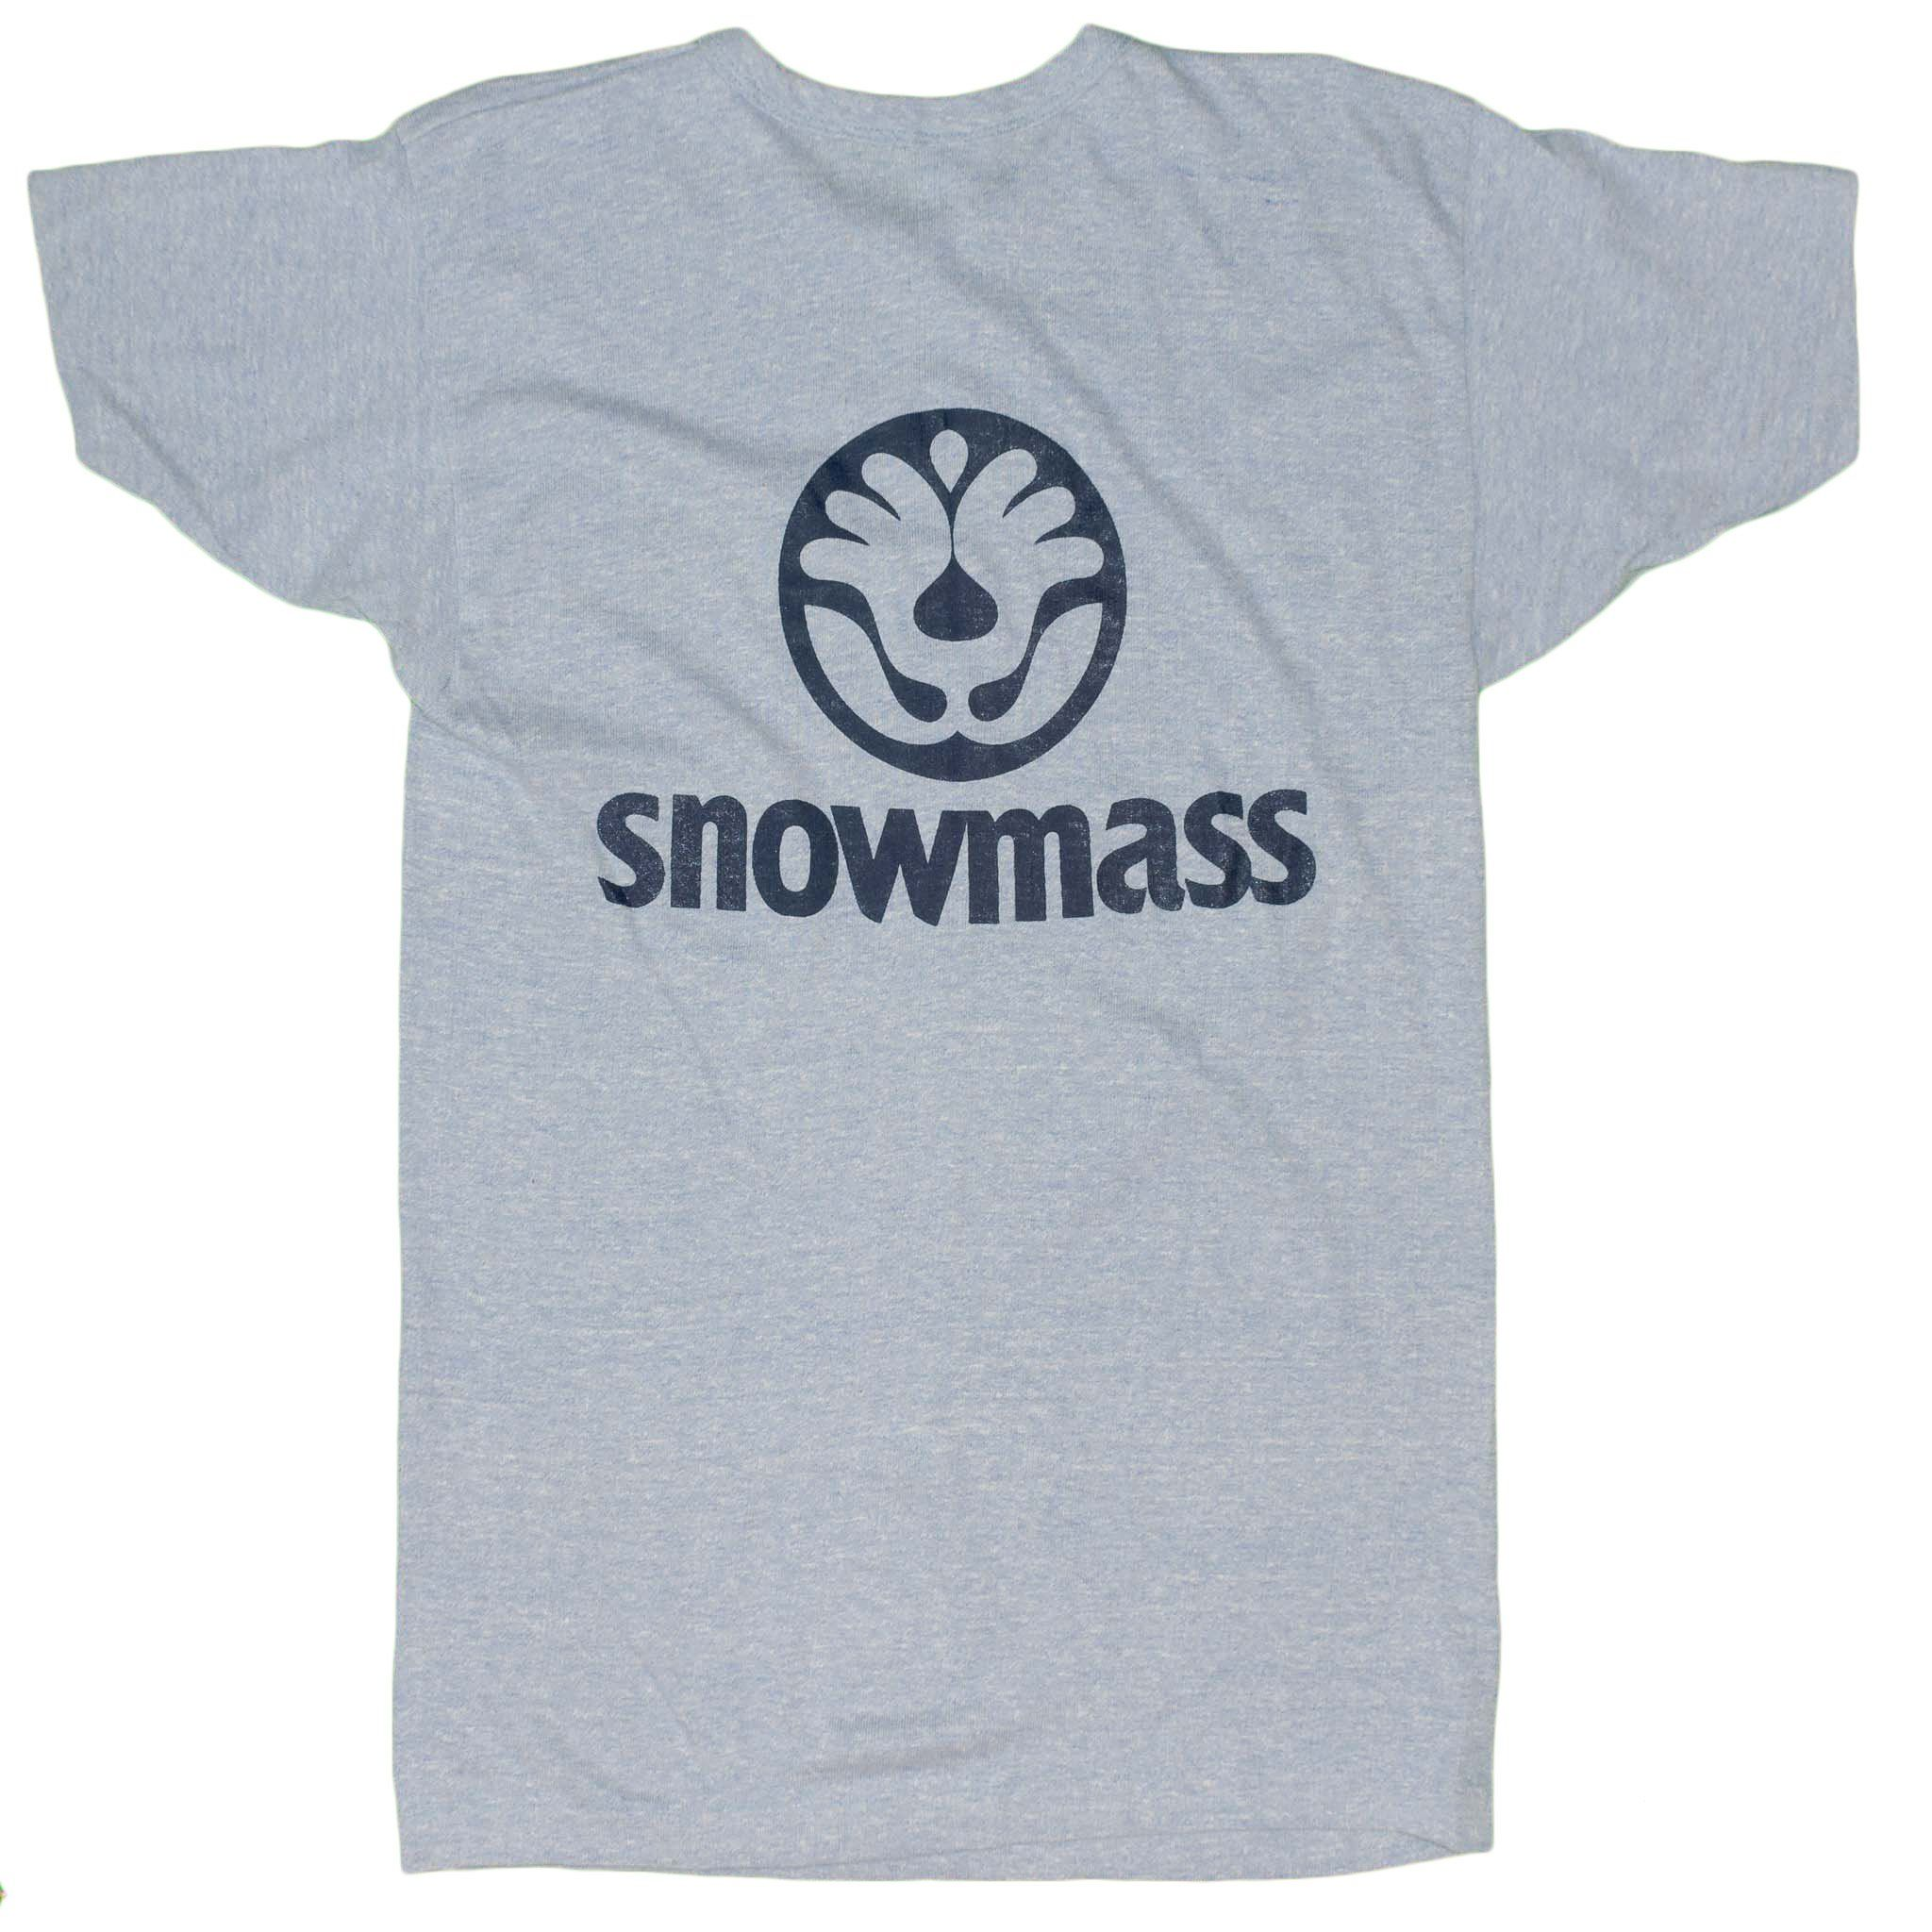 f3319e8f 1970's Snowmass Champion Men's T-Shirt Large Vintage Blue Faded Short –  itisvintage #champion #snowmass #vintagetees #1970s #itisvintage #skiing  #ski #blue